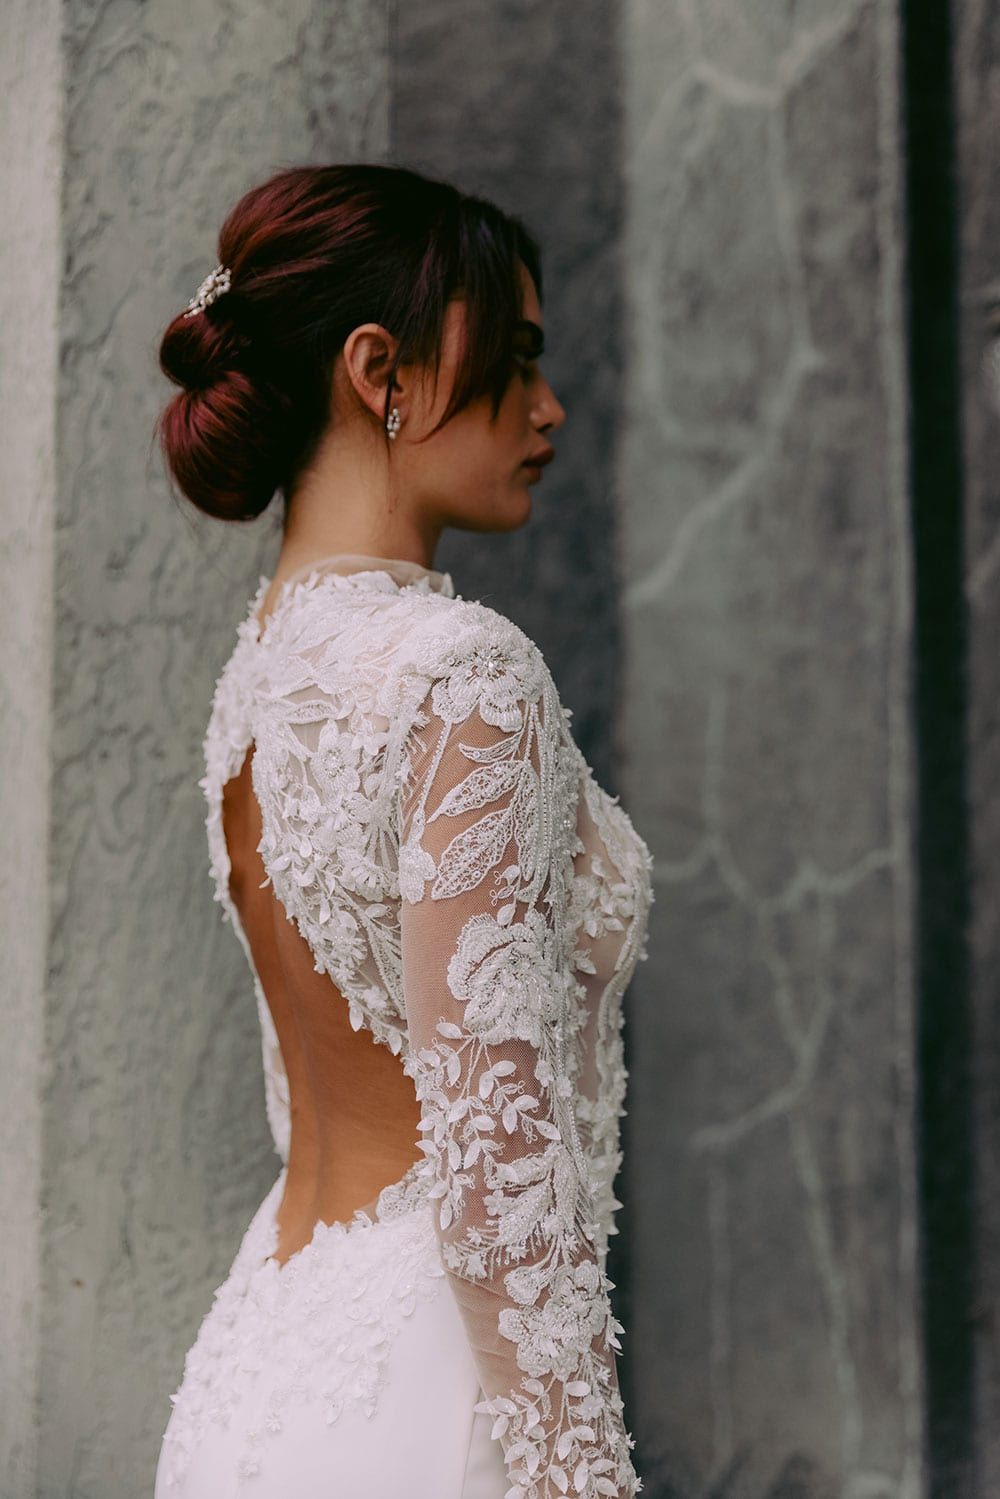 Moana Wedding gown from Vinka Design - Spectacular wedding dress perfect for the modern bride who still wants a classic spark! 3D lace embroidery complemented by a high neckline, fitted sleeves, and stunning low back into a flare train. Model wearing gown hand on hip showing top half of dress from the side.